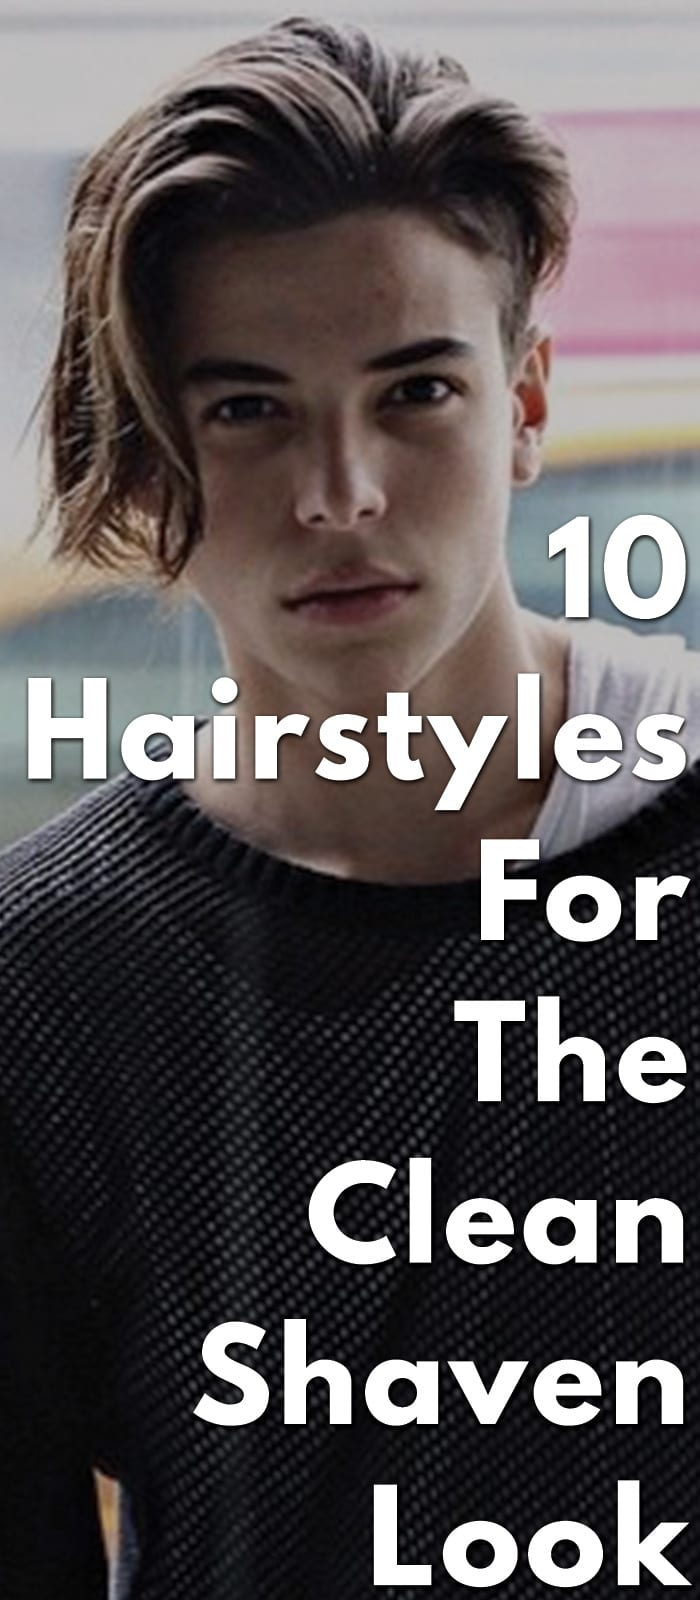 10-Hairstyles-For-The-Clean-Shaven-Look